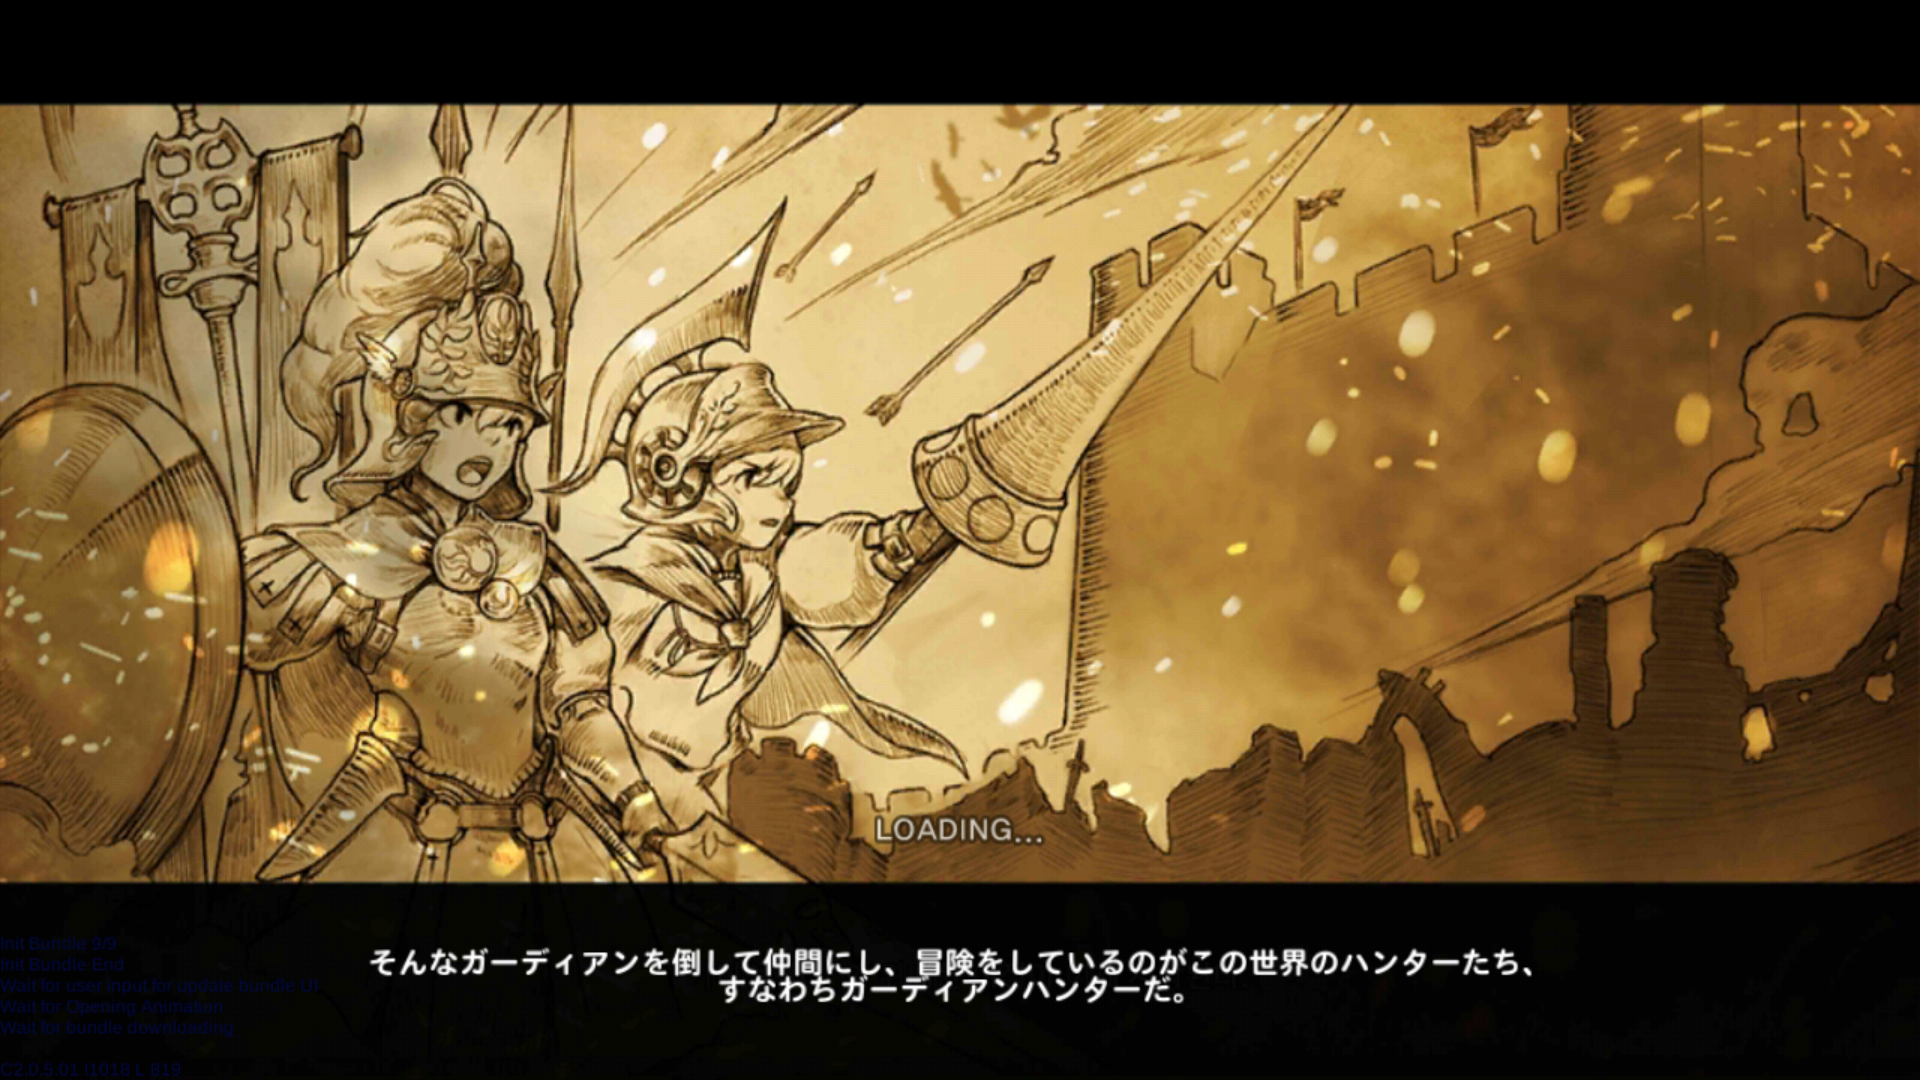 androidアプリ ガーディアンハンター(Guardian Hunter)攻略スクリーンショット1